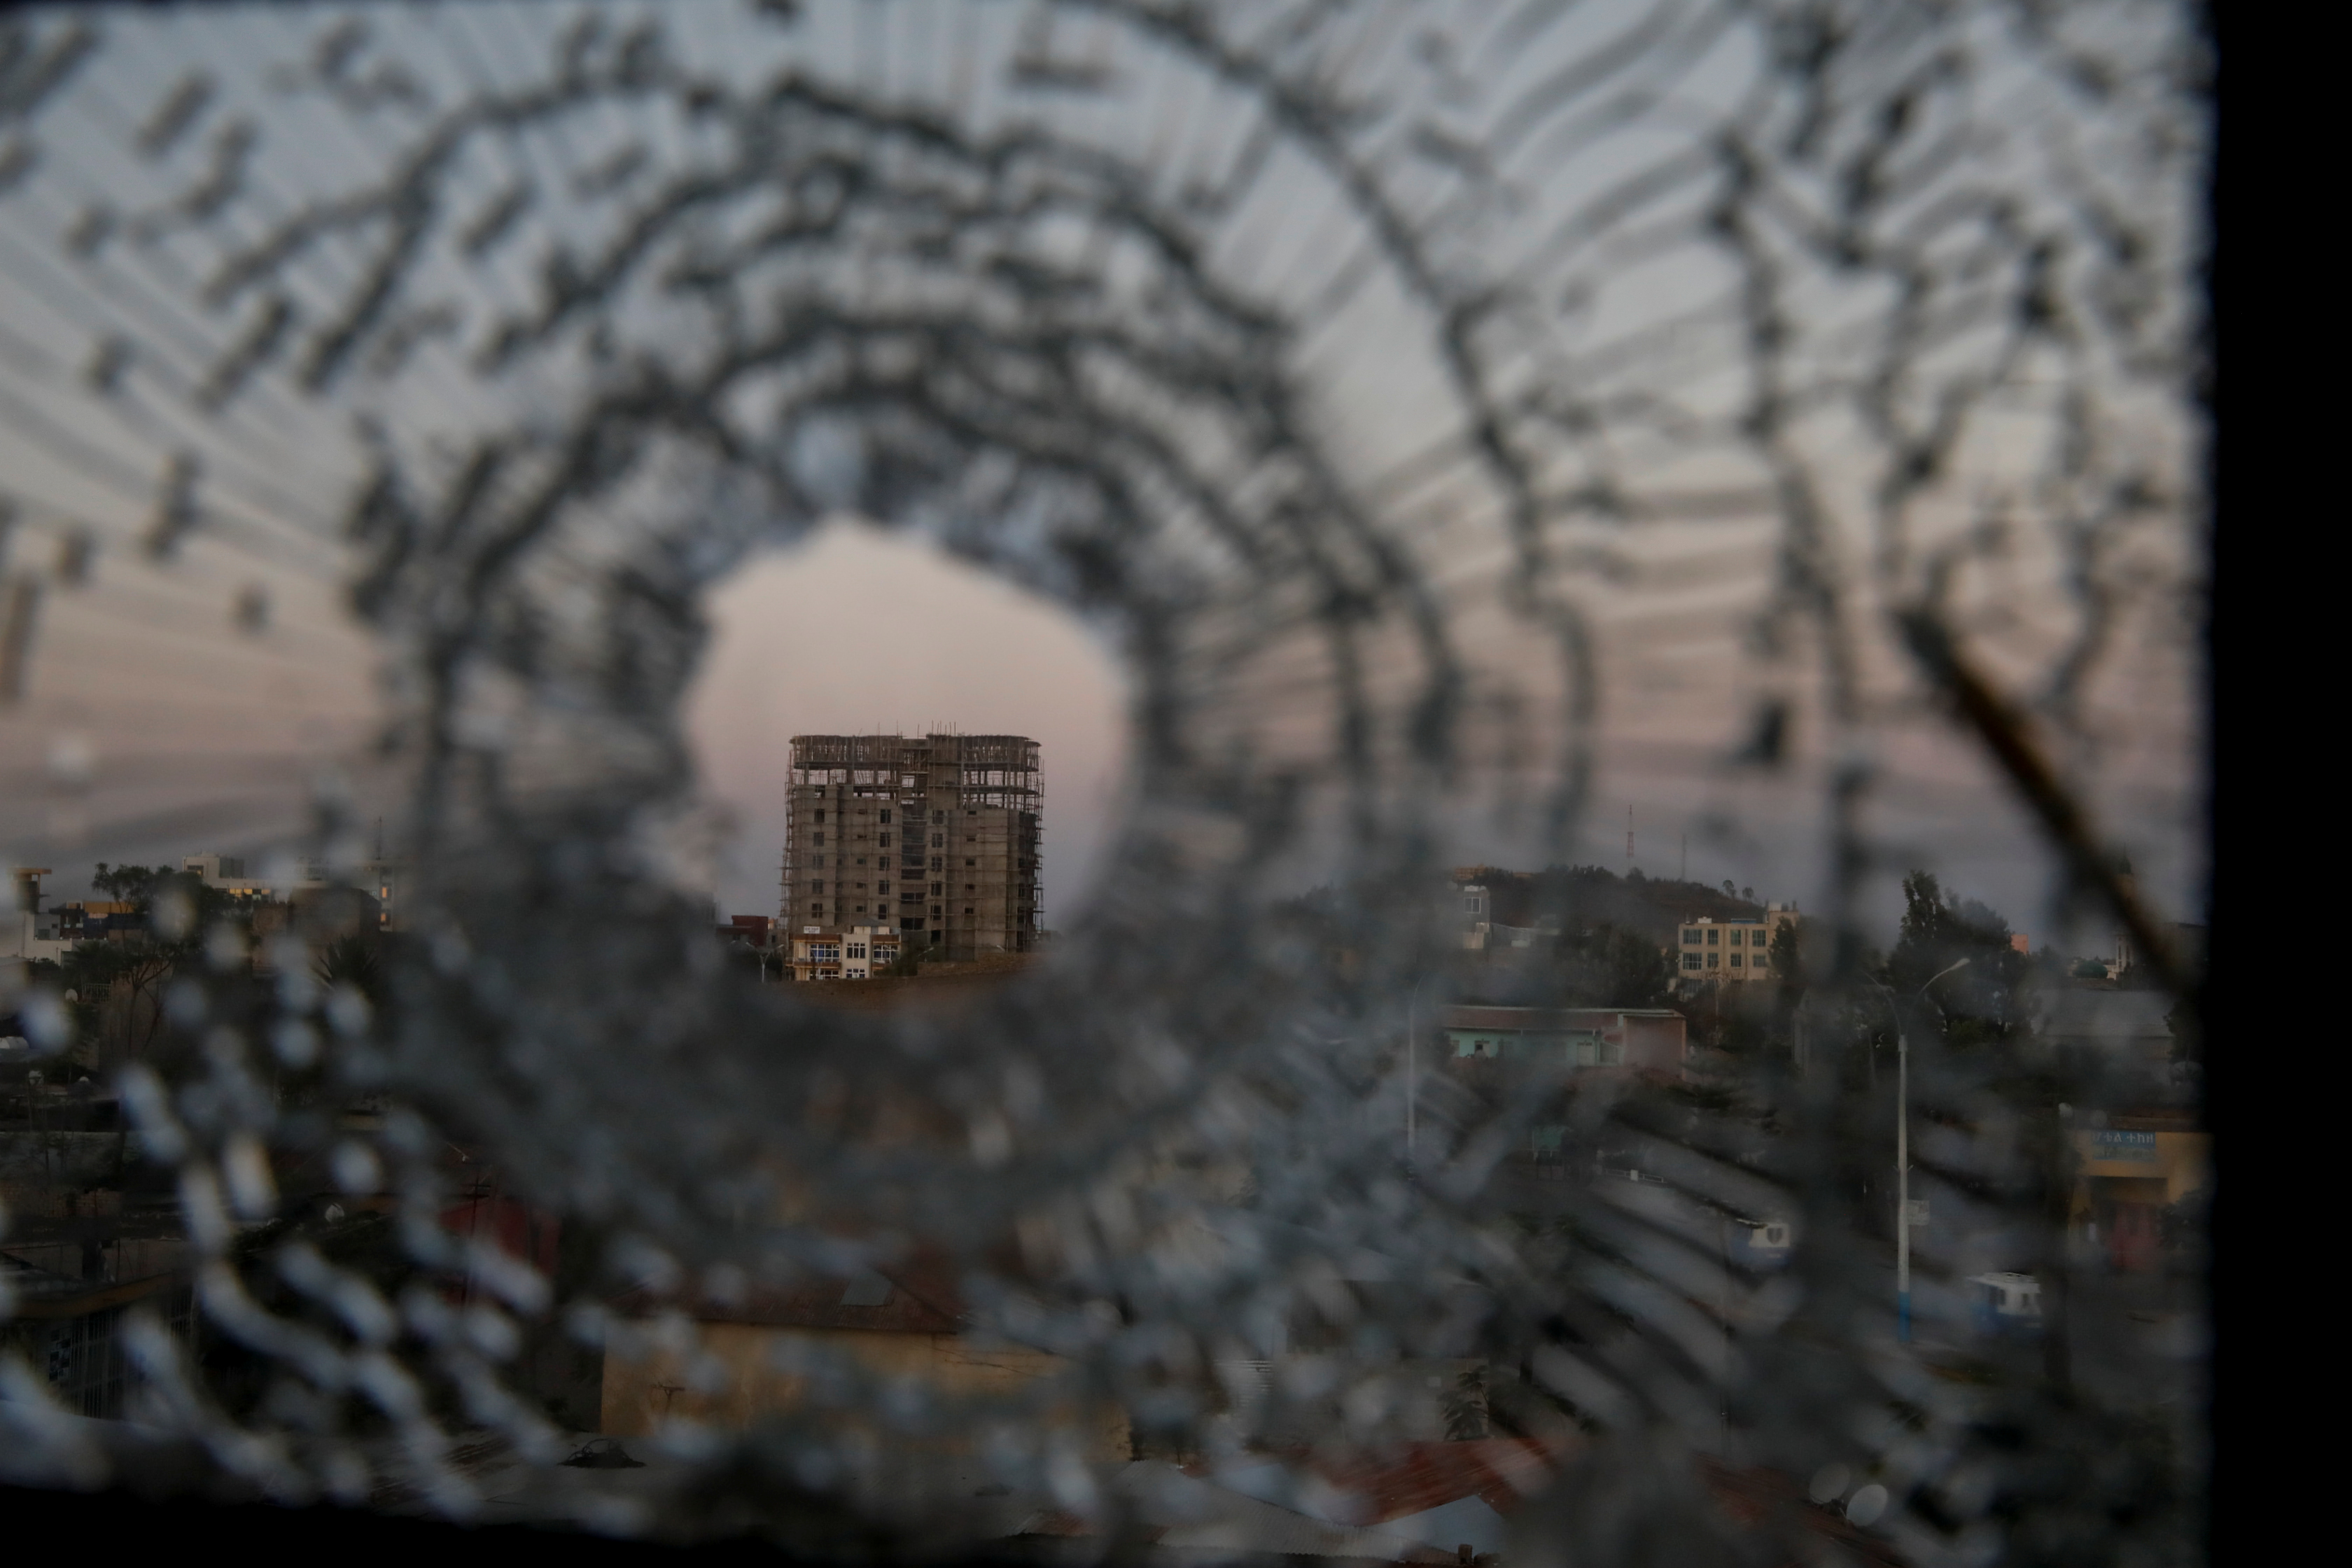 A building is seen through a bullet hole in a window of the Africa Hotel in the town of Shire, Tigray region, Ethiopia, March 17, 2021. REUTERS/Baz Ratner